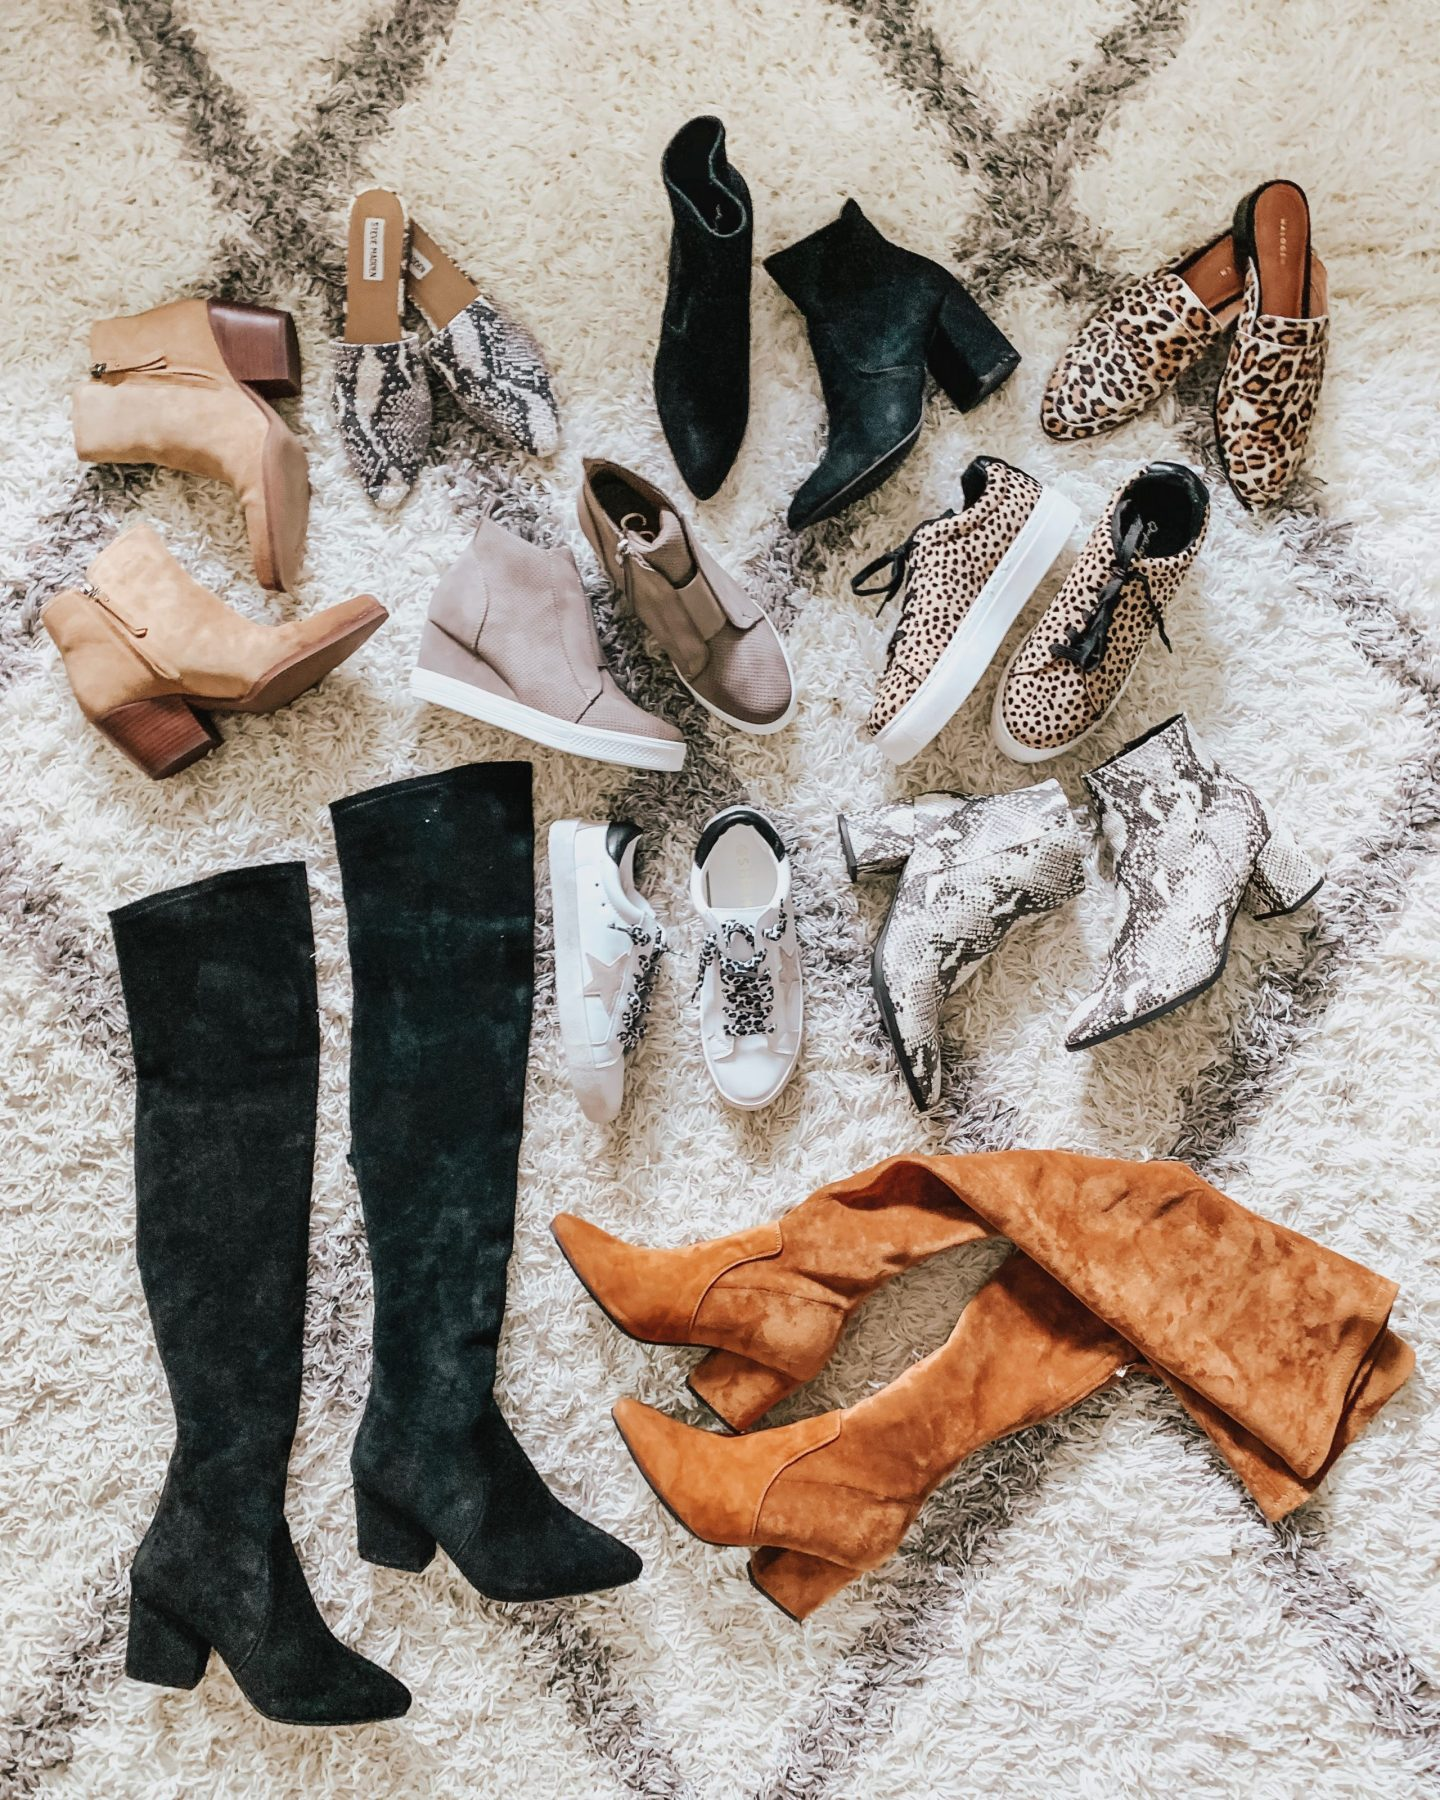 2019 Ultimate Guide to Fall's Best Shoes, snakeskin flats, leopard flats, over the knee boots, Golden Goose dupes, wedge sneakers